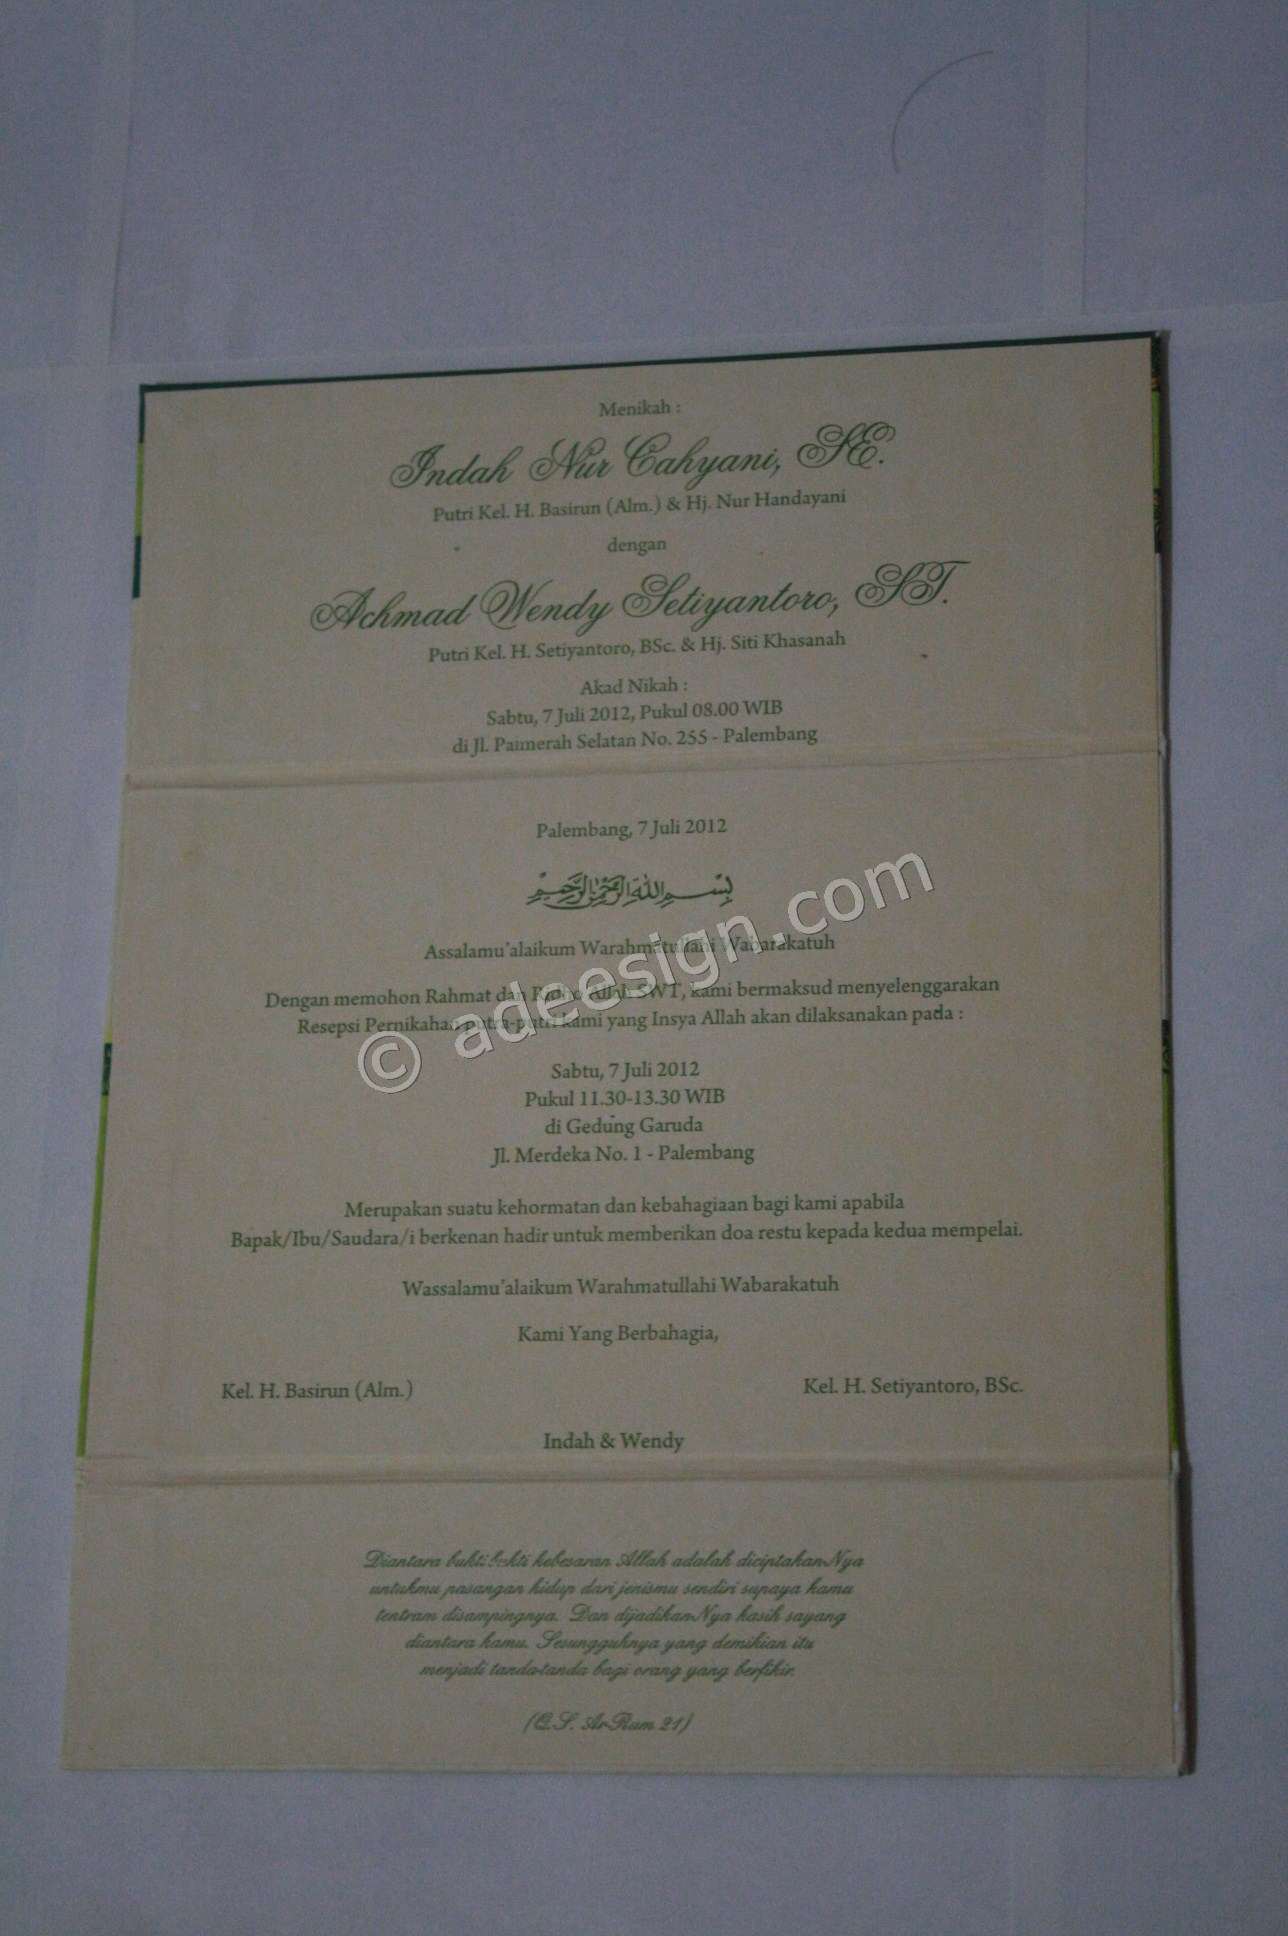 Kartu Undangan Pernikahan Hard Cover Indah dan Wendy 3 - Pesan Wedding Invitations Simple di Jambangan Karah